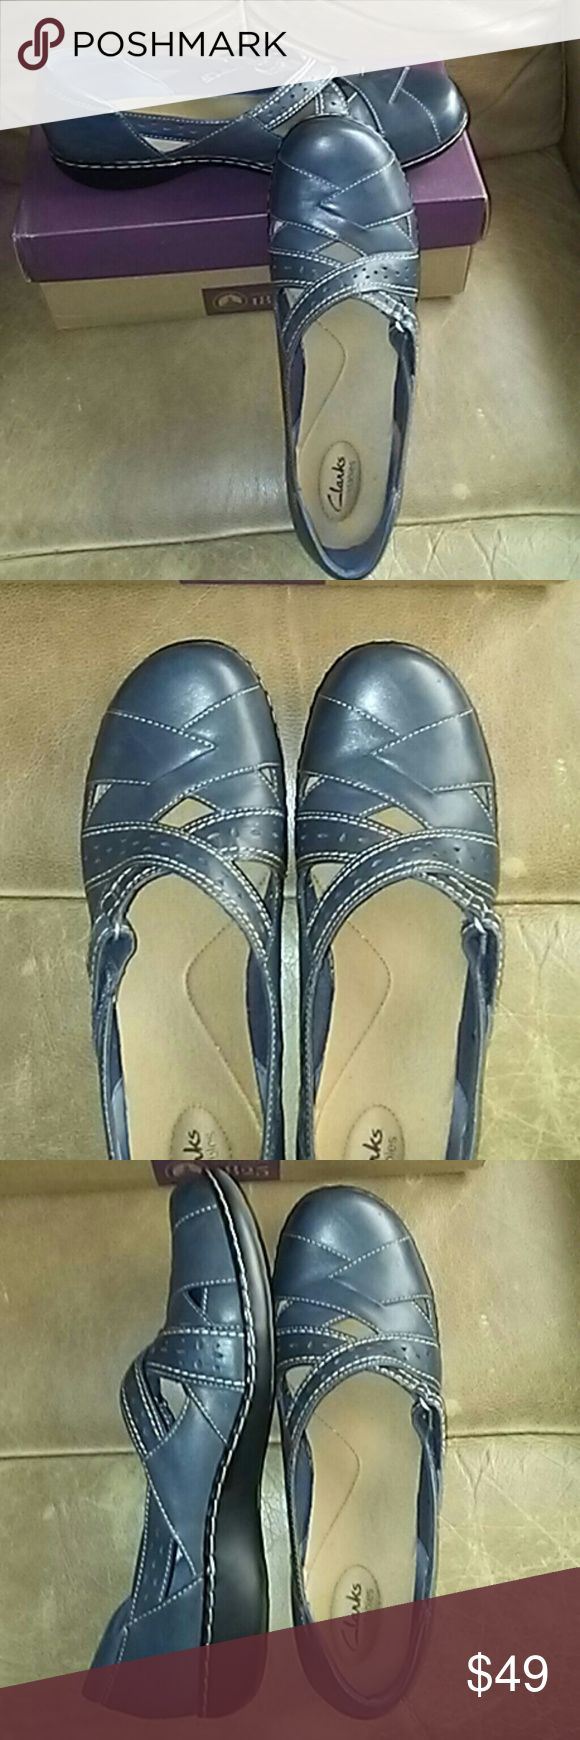 NIB Clarks navy leather 12M flat shoes NIB Clarks navy flat shoes. Soft and supple. Too small for me. 12M Clarks  Shoes Flats & Loafers